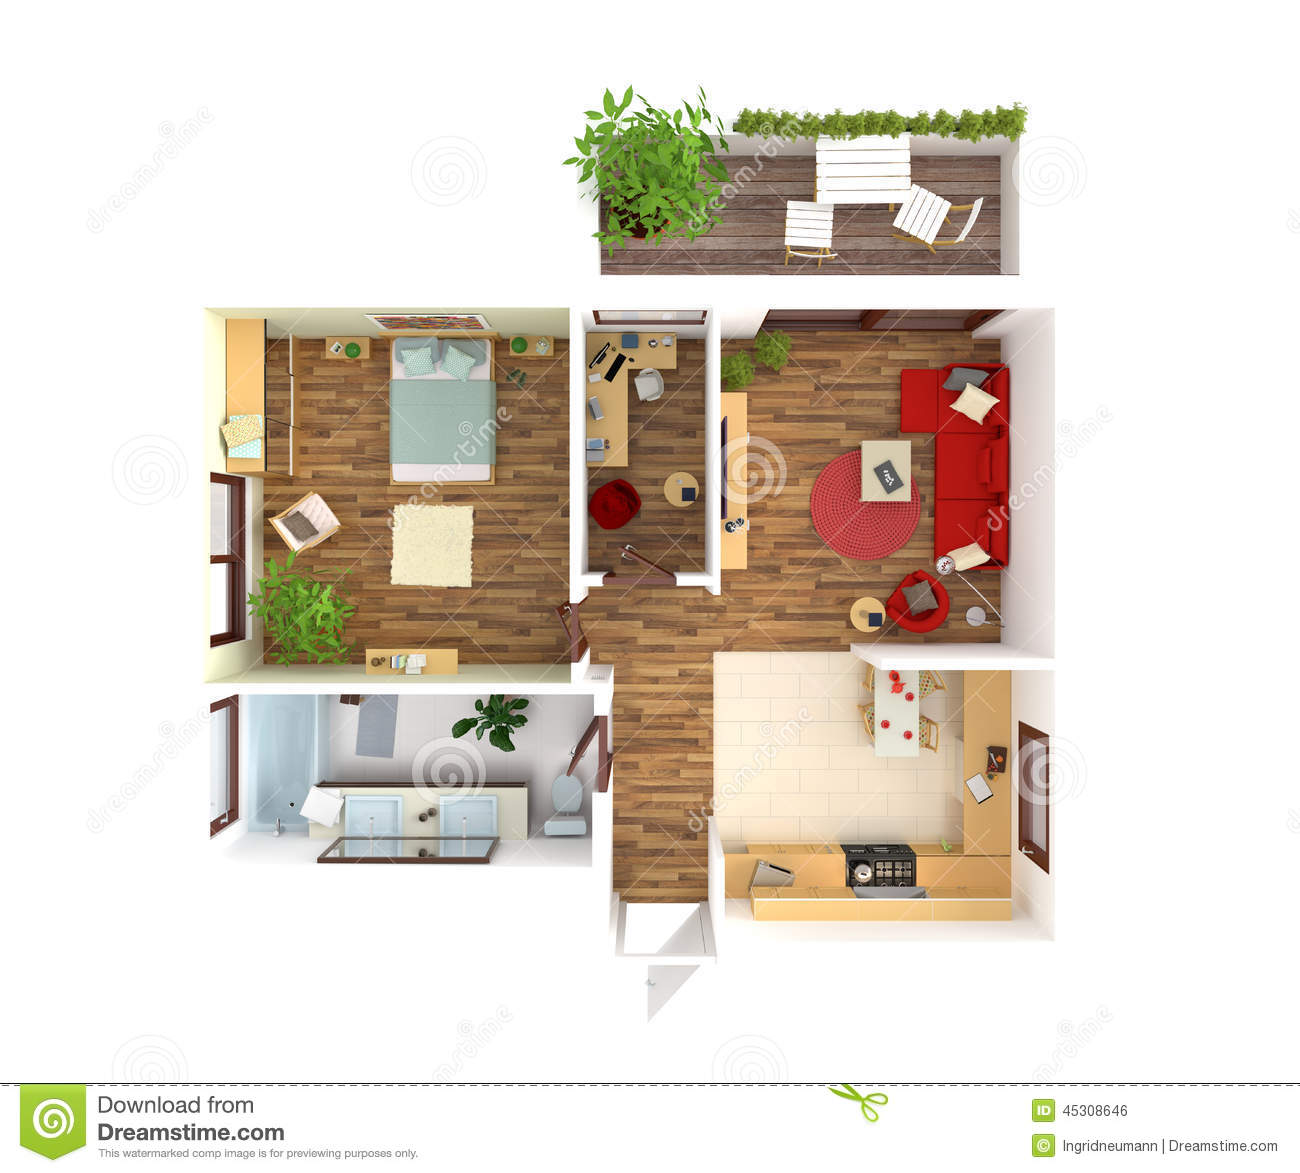 house plan top view interior design stock illustration illustration of construction hall. Black Bedroom Furniture Sets. Home Design Ideas